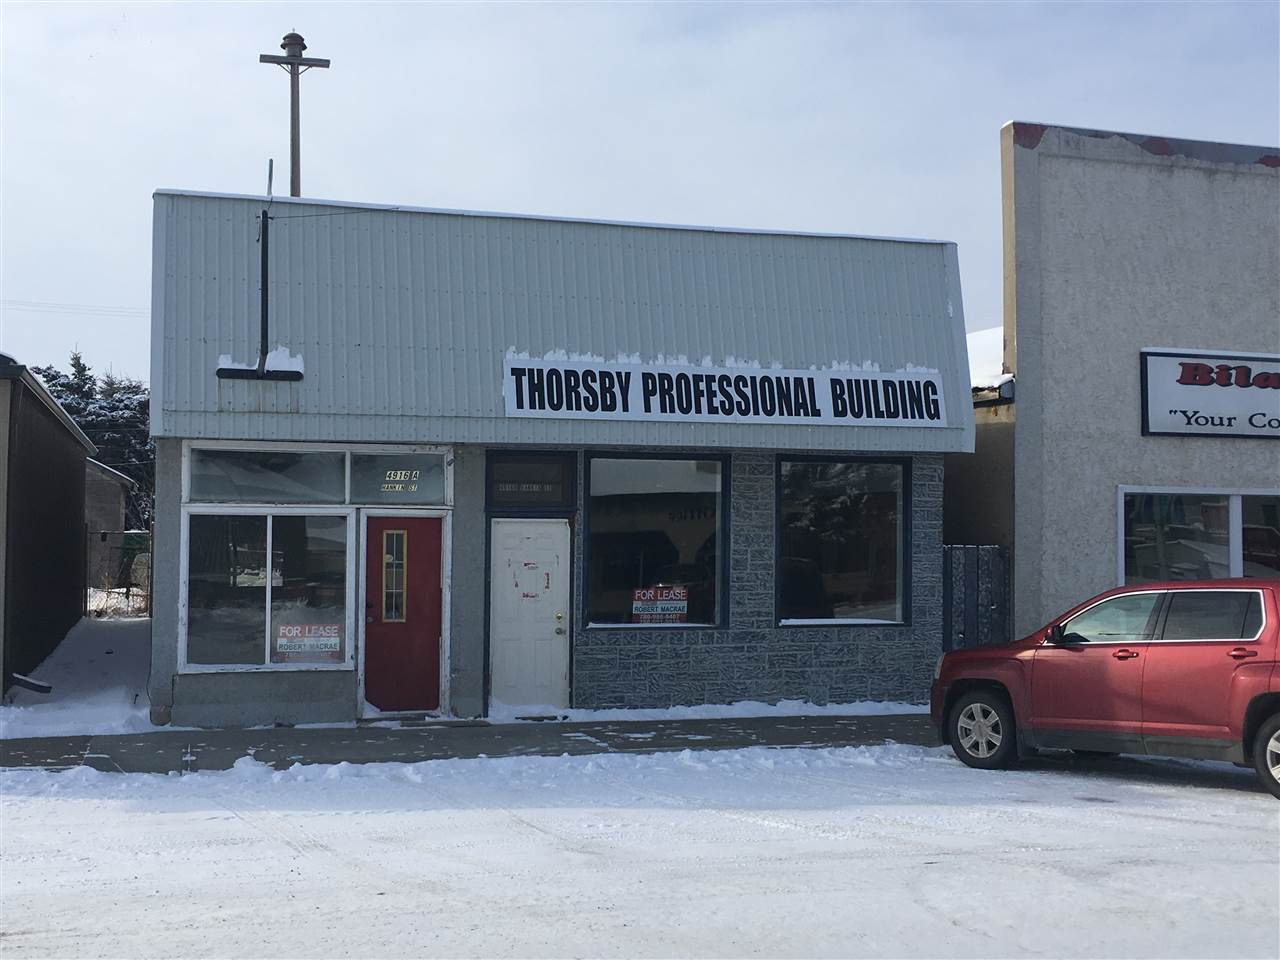 "A solid 2010 SQ FT cement block building situated on the main business strip in Thorsby. Affordable business location - 24 minutes from Leduc.  The building is divided into 2 separate areas with 2 address's, individual front entry's, separate furnace and gas meters, common water and bathroom / coffee room area. Rear lane access and parking. Ideal set-up for a vape AND Cannabis retail dispensary.  South side is approx 1400 SQ. FT. with storage and rear building access. North side approx. 490 SQ. FT. Both sides have frontage traffic exposure. New metal roof in 2019. Quick possession, Vendor will consider "" lease to own"". Either or both sides can be leased as well @ $.75 psf/ month plus utilities."